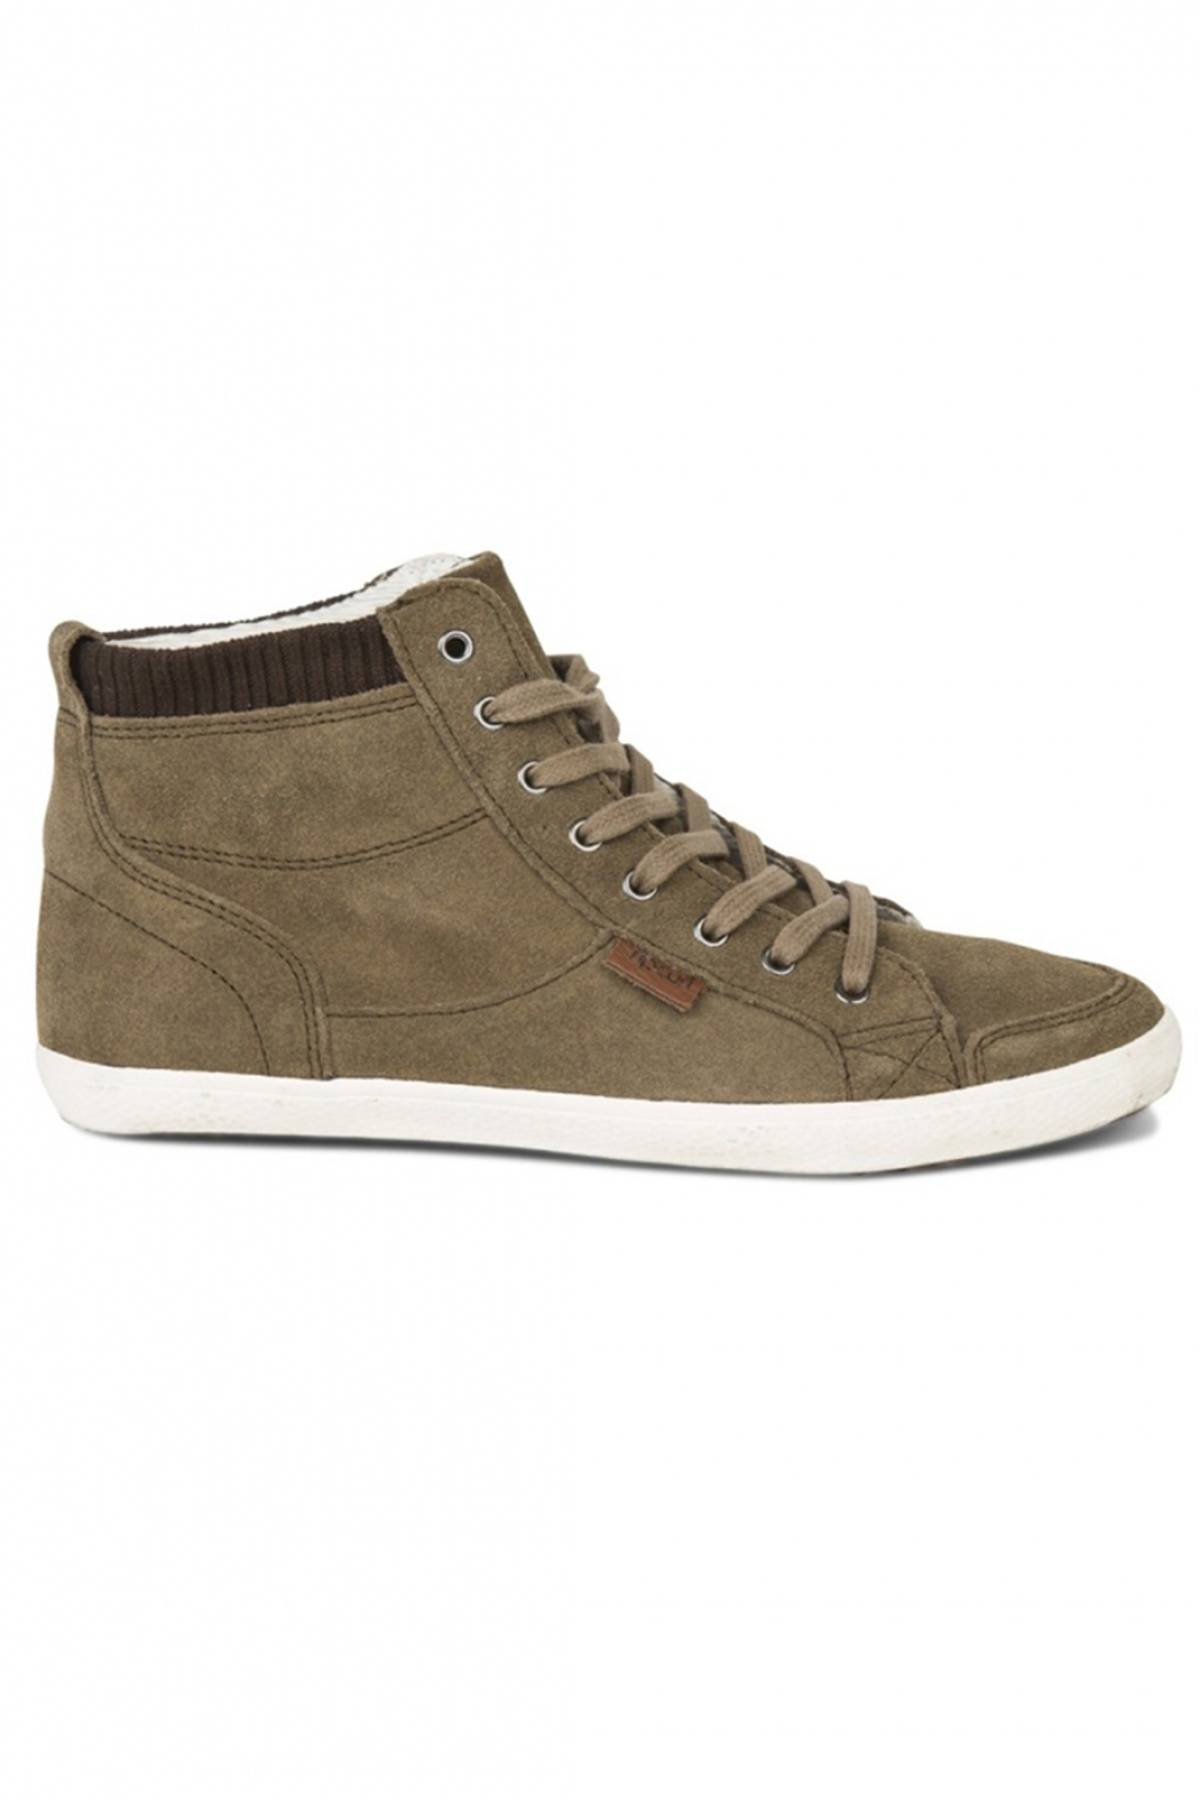 RIP CURL Chaussures RIP CURL FEMME 37 BETSY HIGH TGLAL1 5067